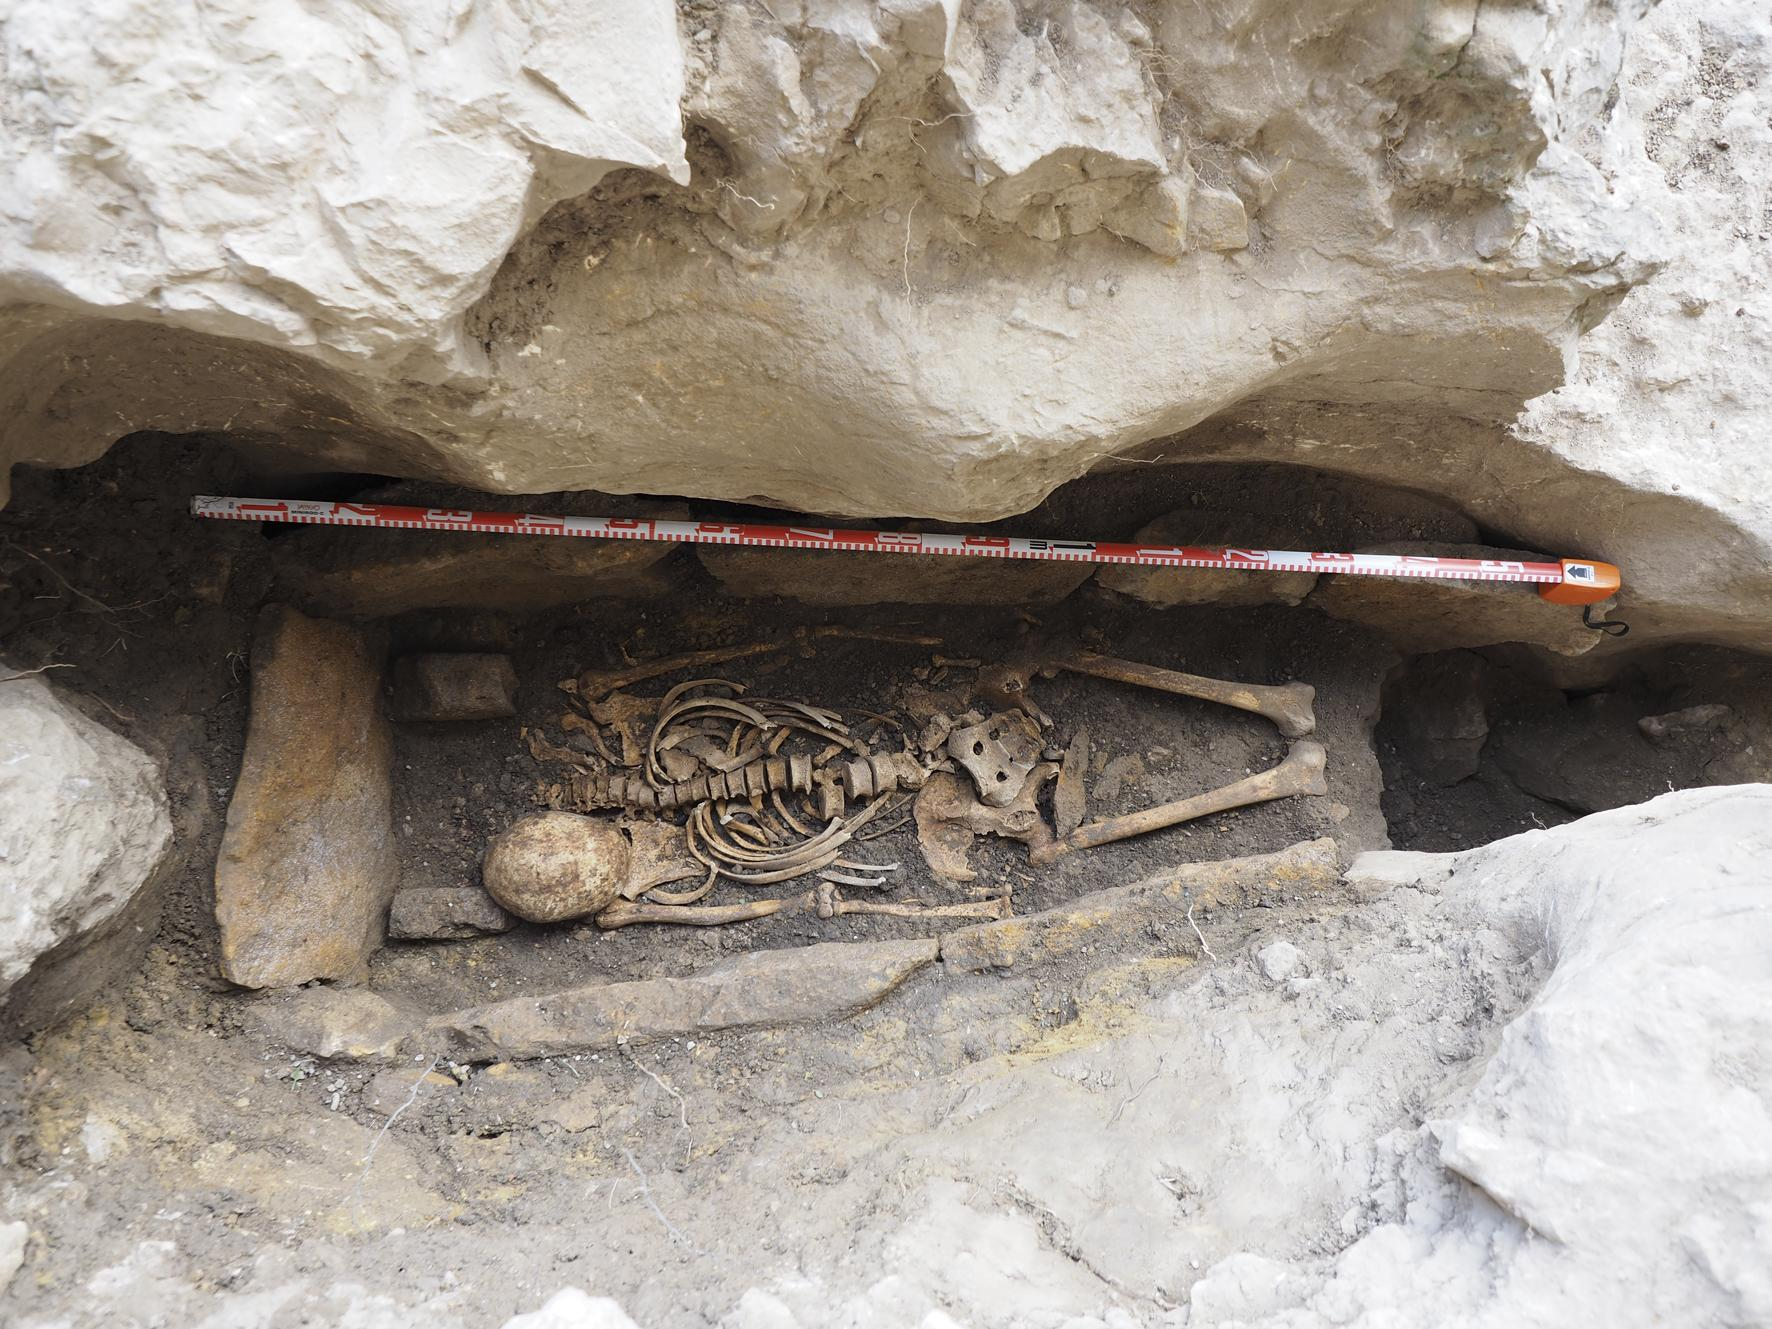 early Christian hermit grave